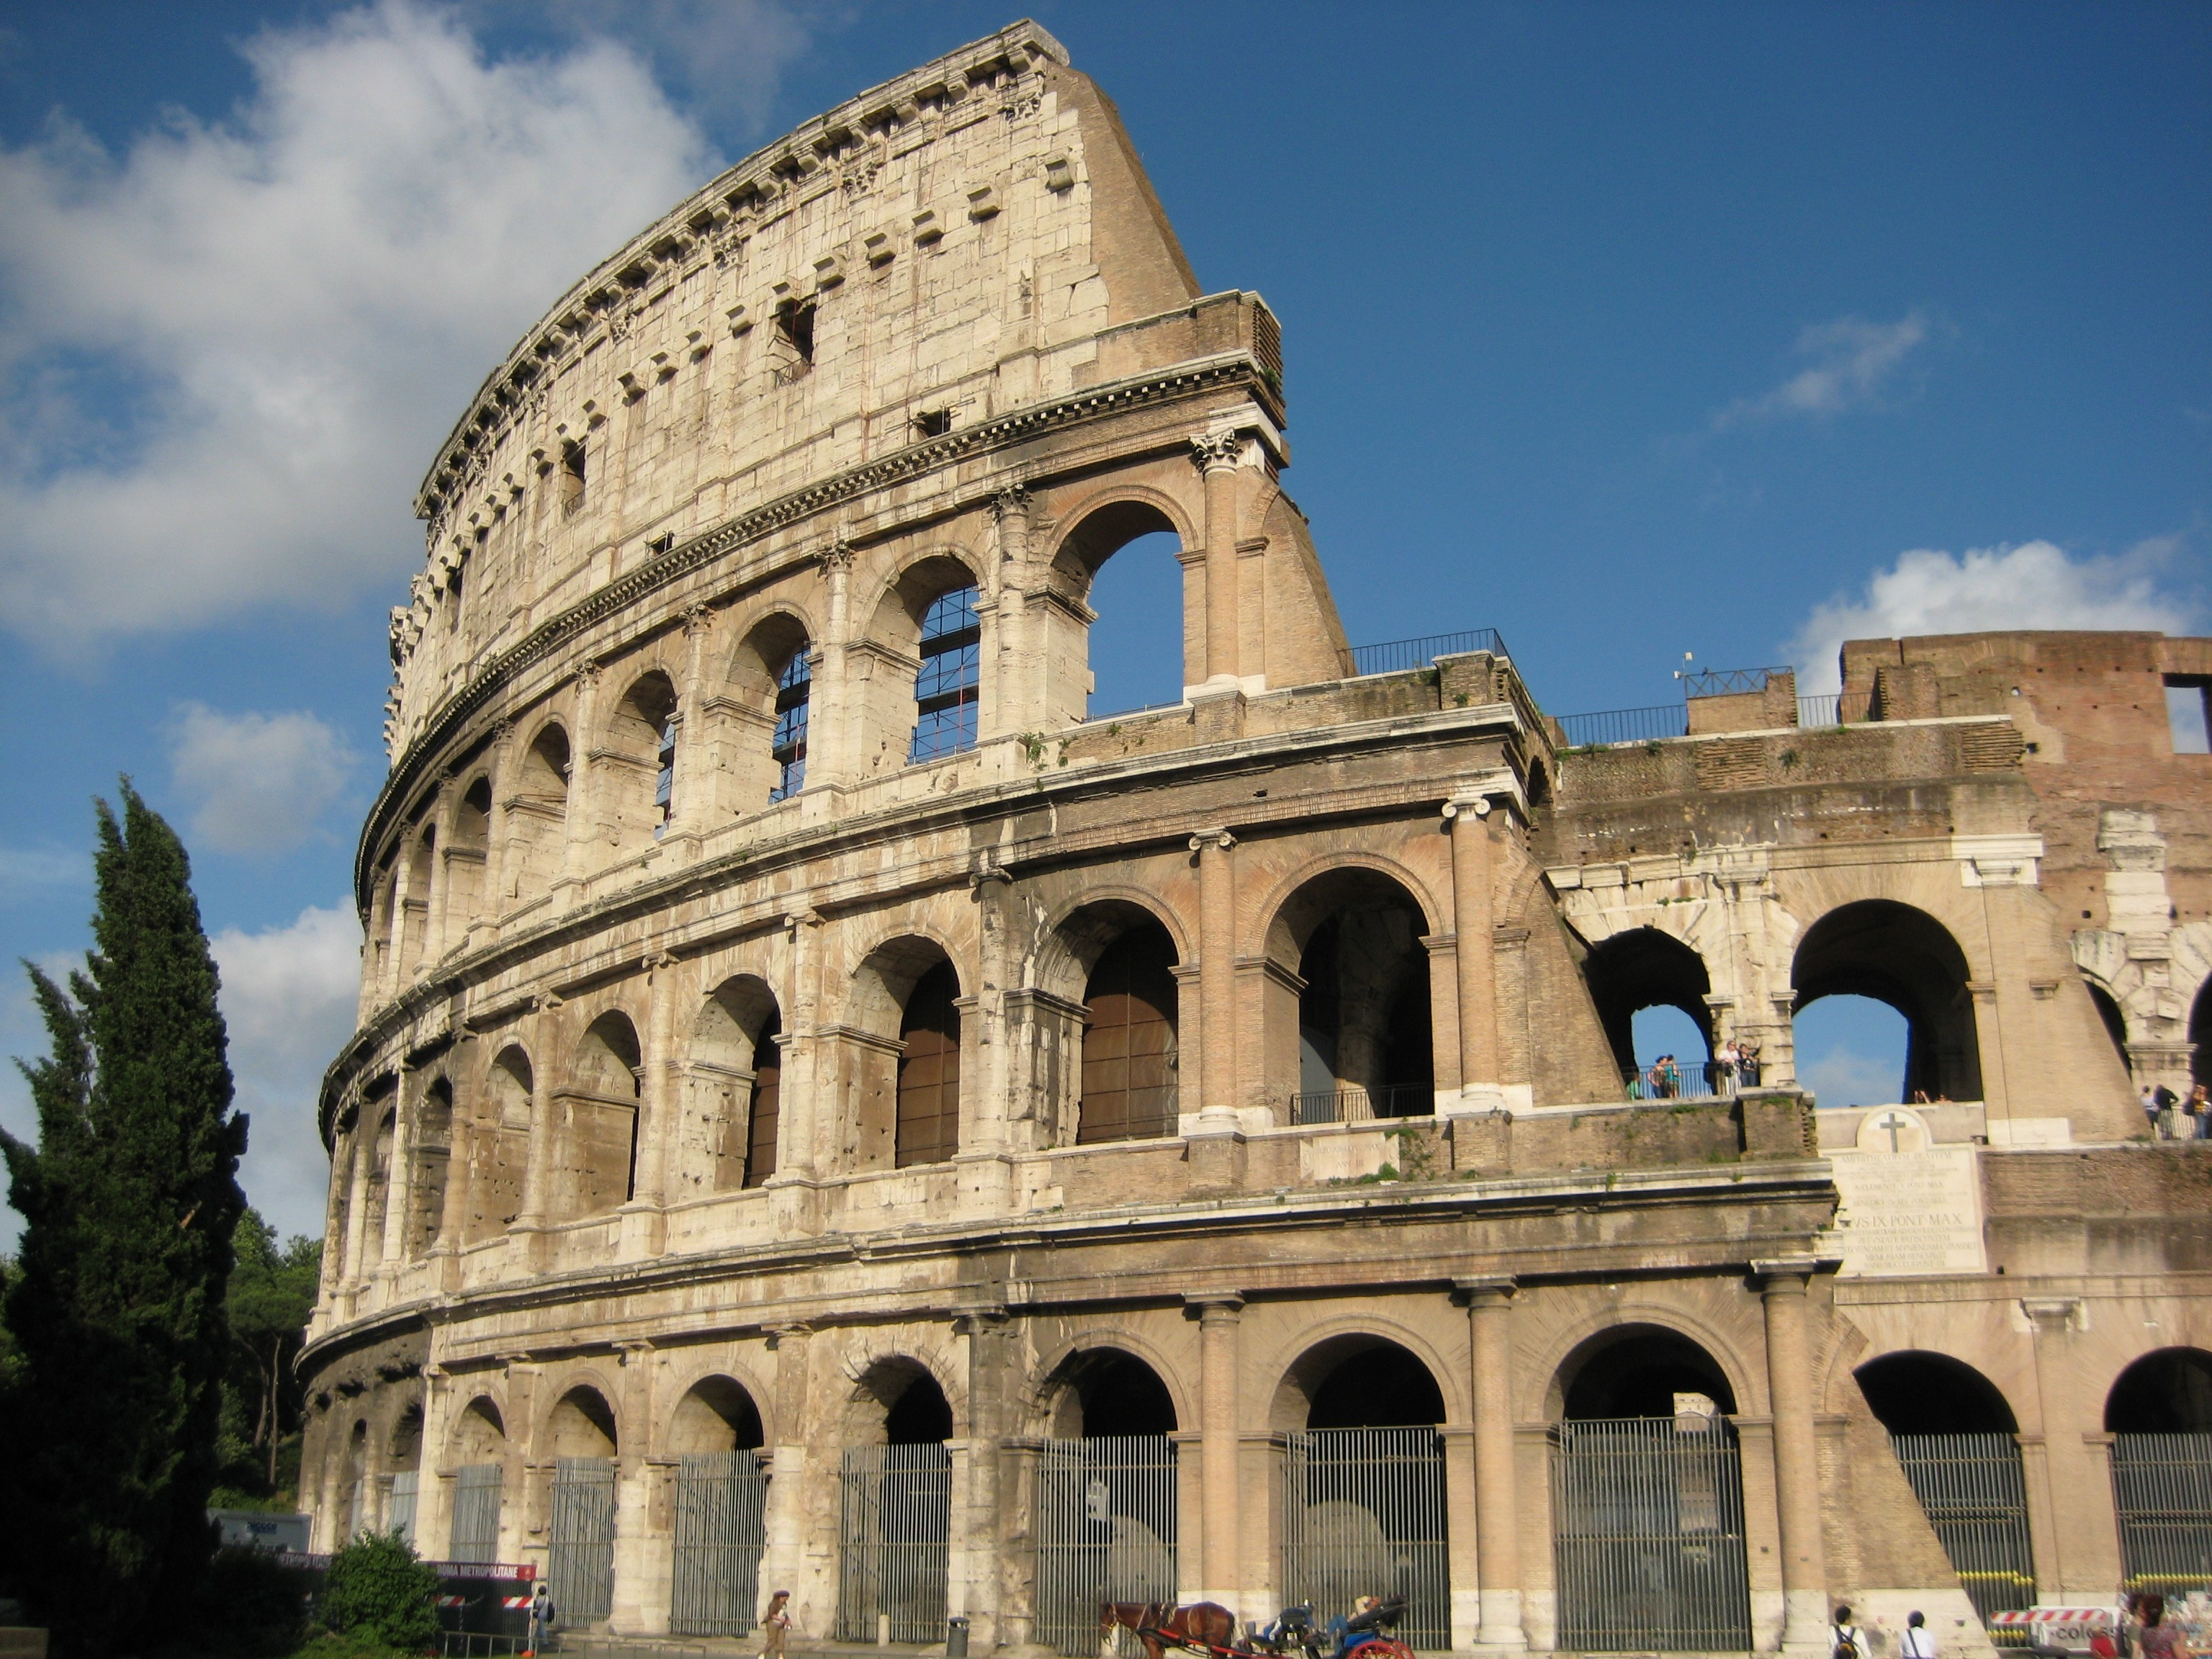 The Colosseum, Rome, Italy1